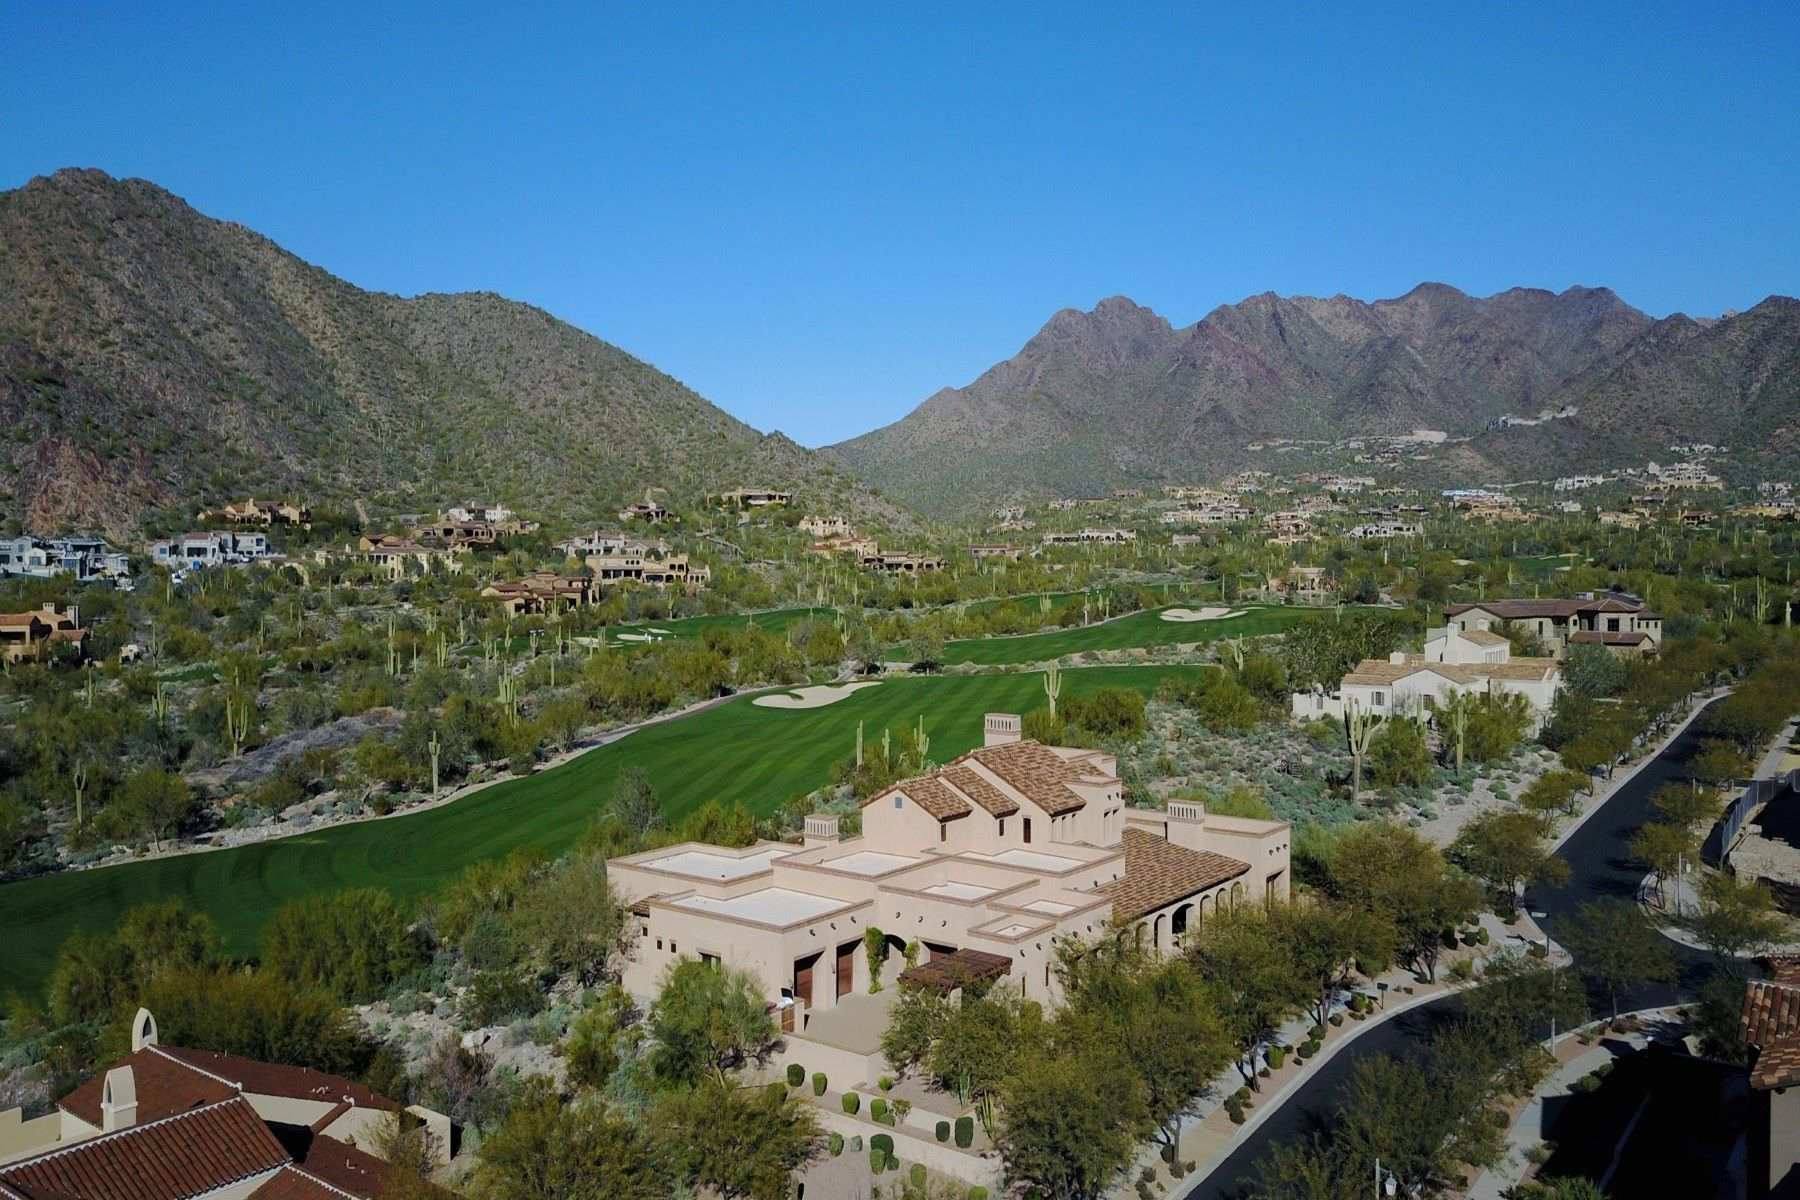 Single Family Home for Sale at Custom Silverleaf golf course home 10284 E Mountain Spring Rd Scottsdale, Arizona, 85255 United States